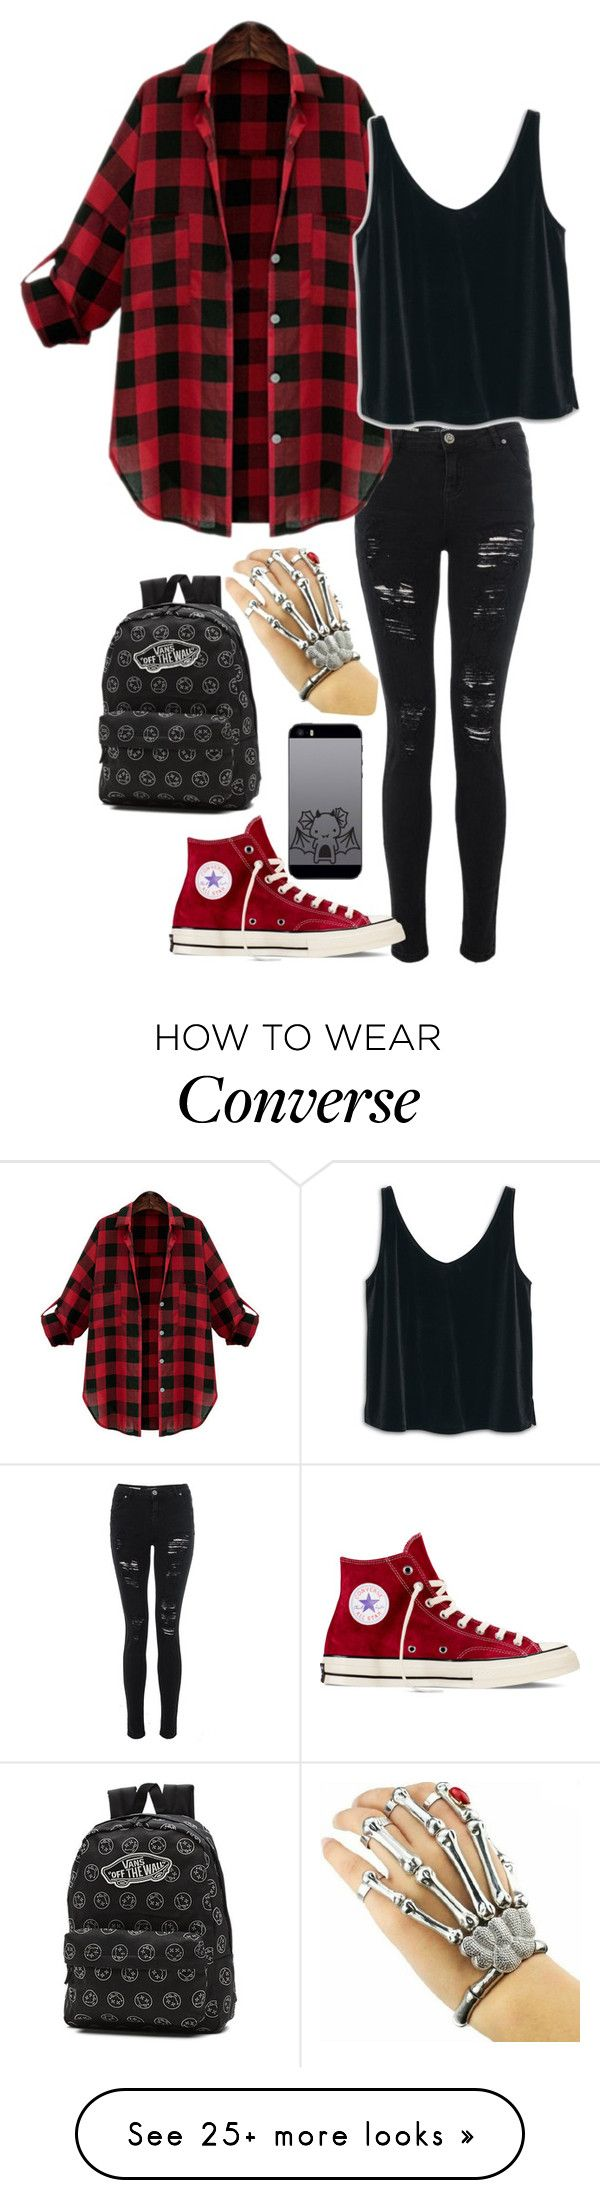 """""""Punk Rock Plaid Overboard"""" by major-12 on Polyvore featuring MANGO, Converse and Vans"""